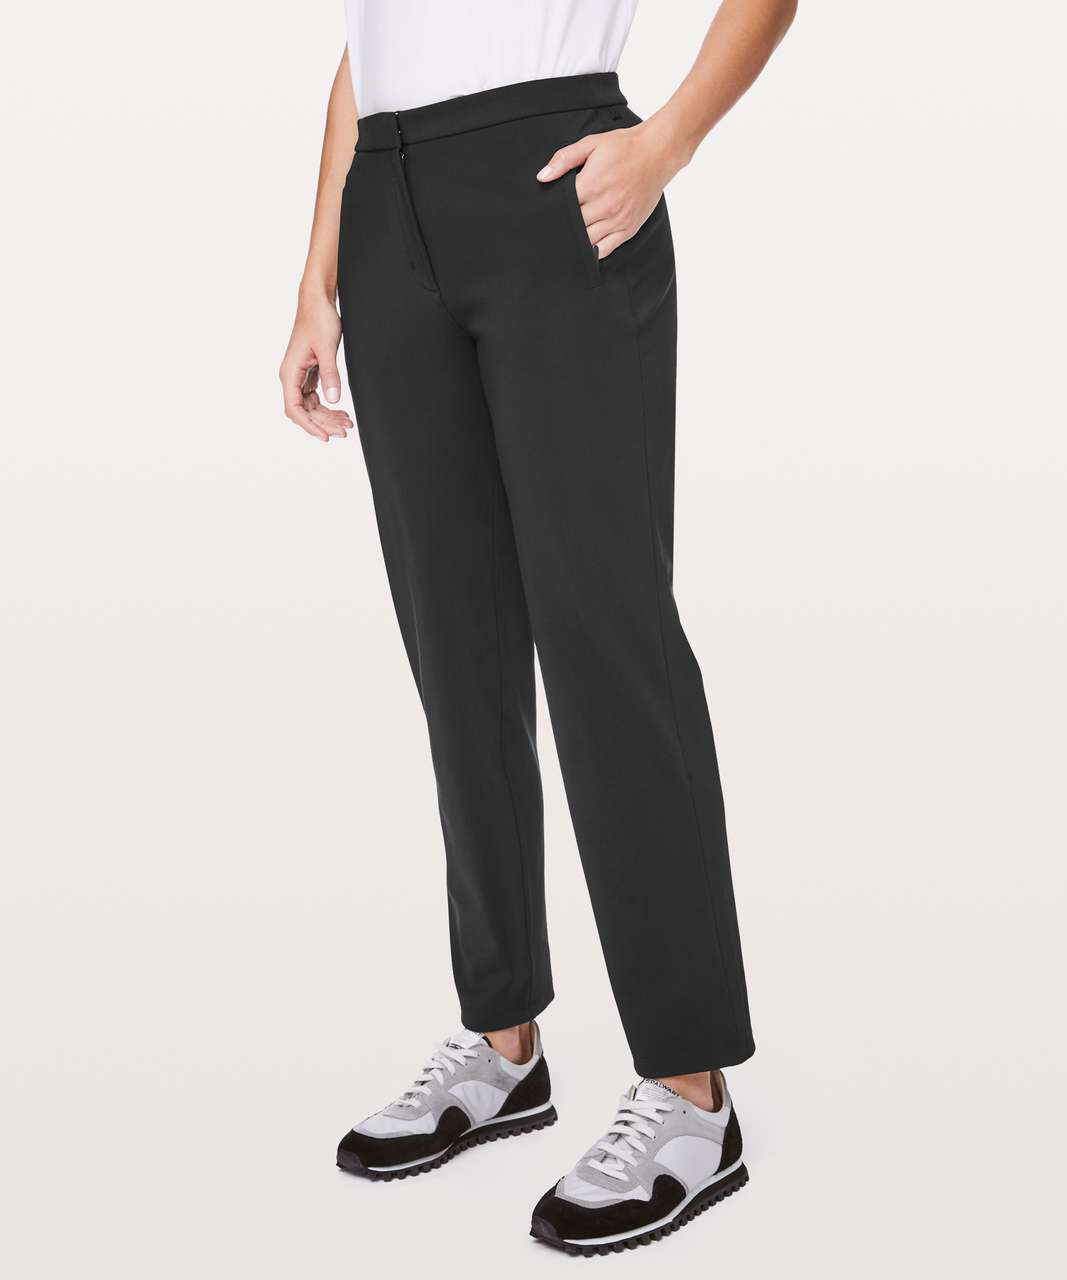 Lululemon On The Move Pant *Lightweight - Black